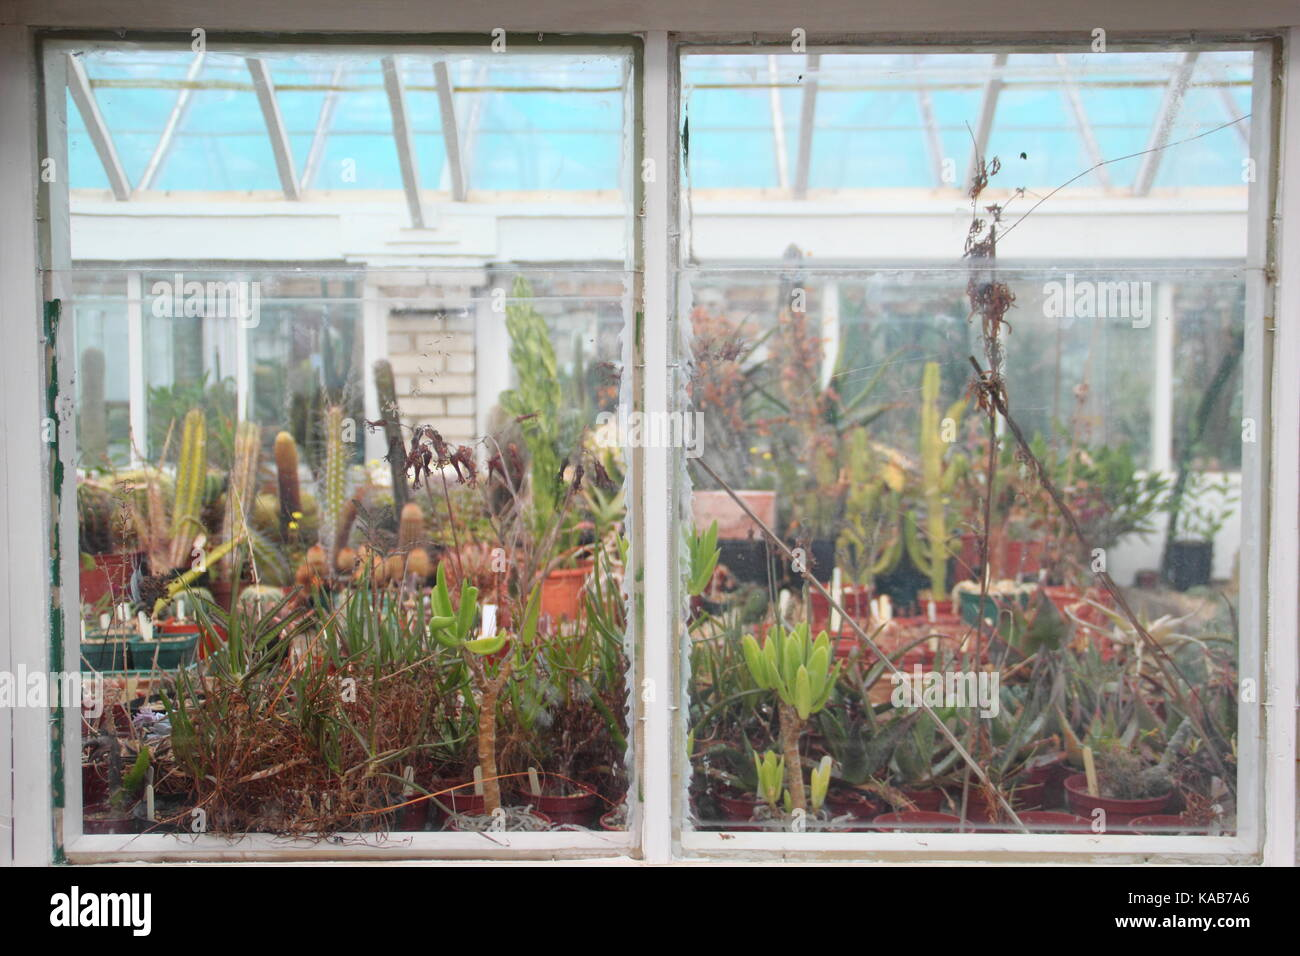 Cactus plant displays seen through interior windows of large greenhouses at Oak Dene, a specialist cactus nursery - Stock Image